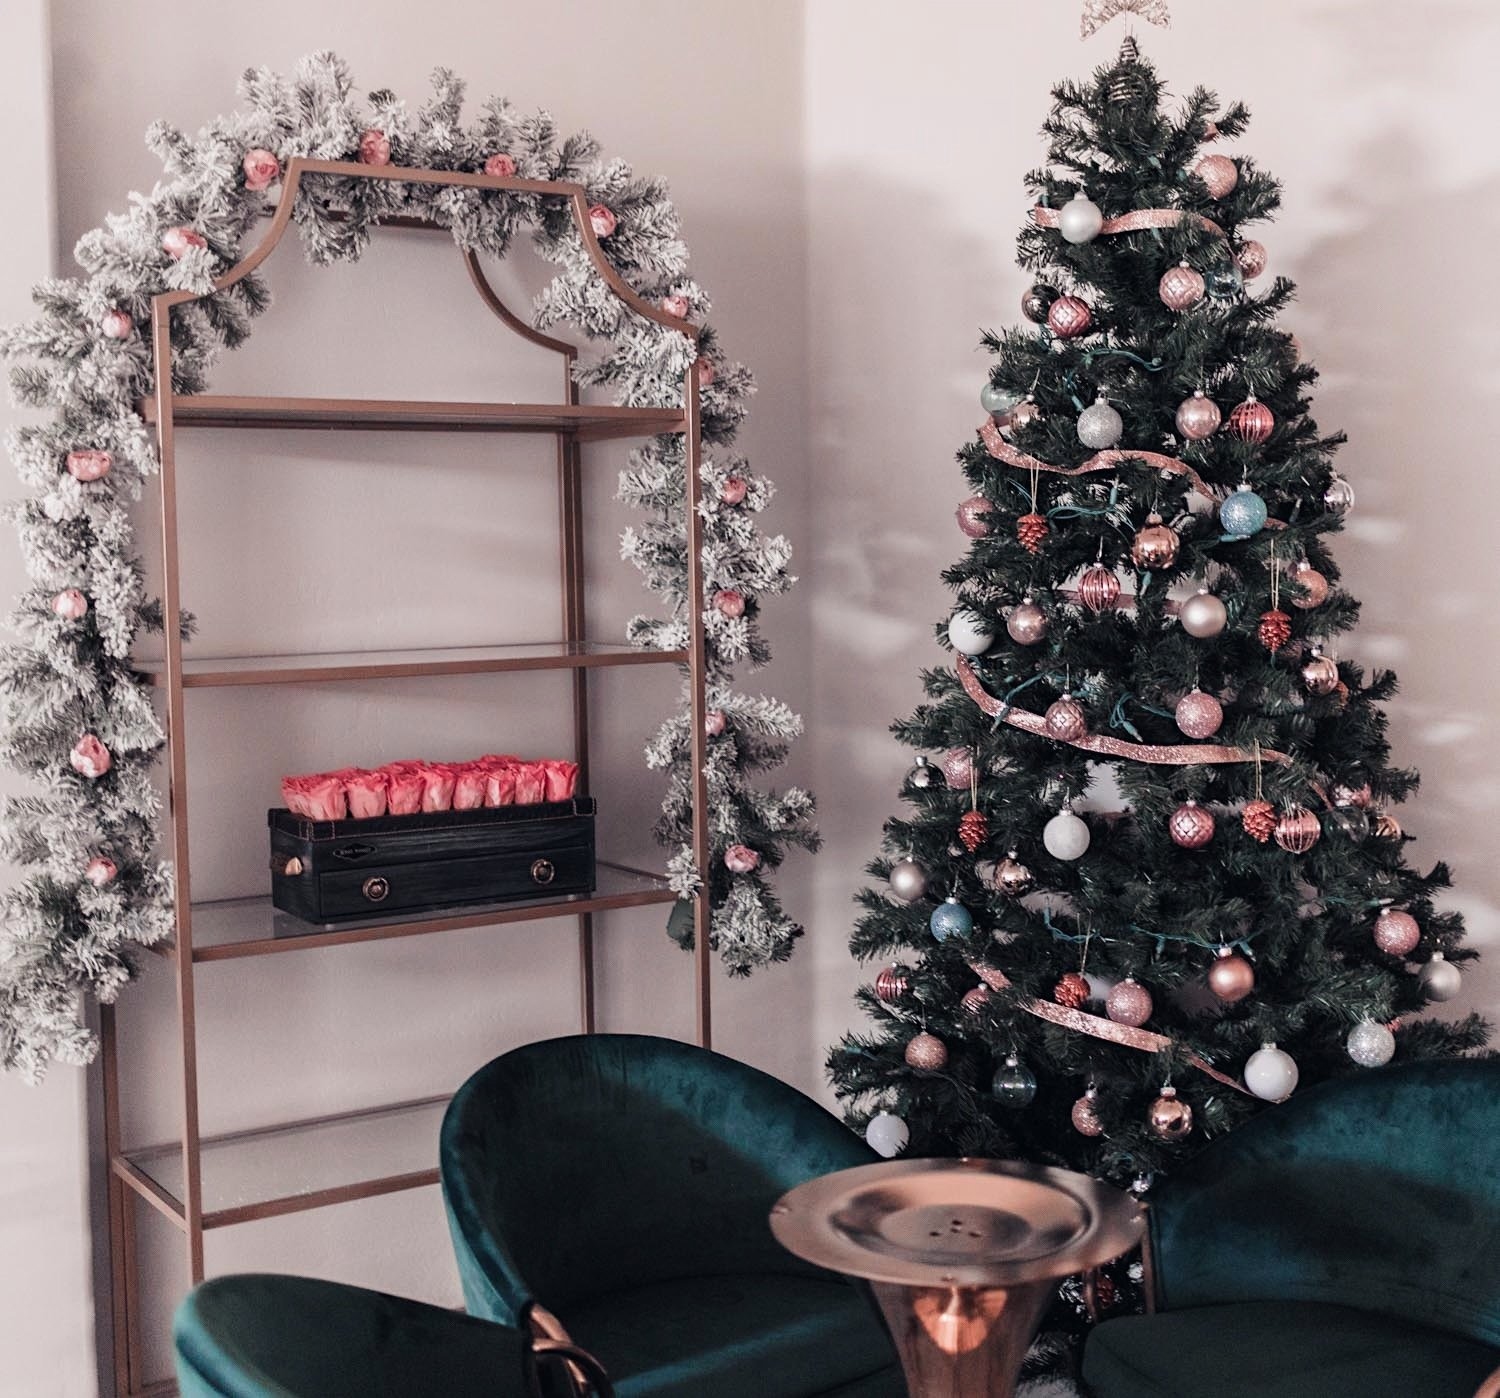 Fashion Blogger Elizabeth Hugen shares her feminine Christmas decor in a pink holiday home tour